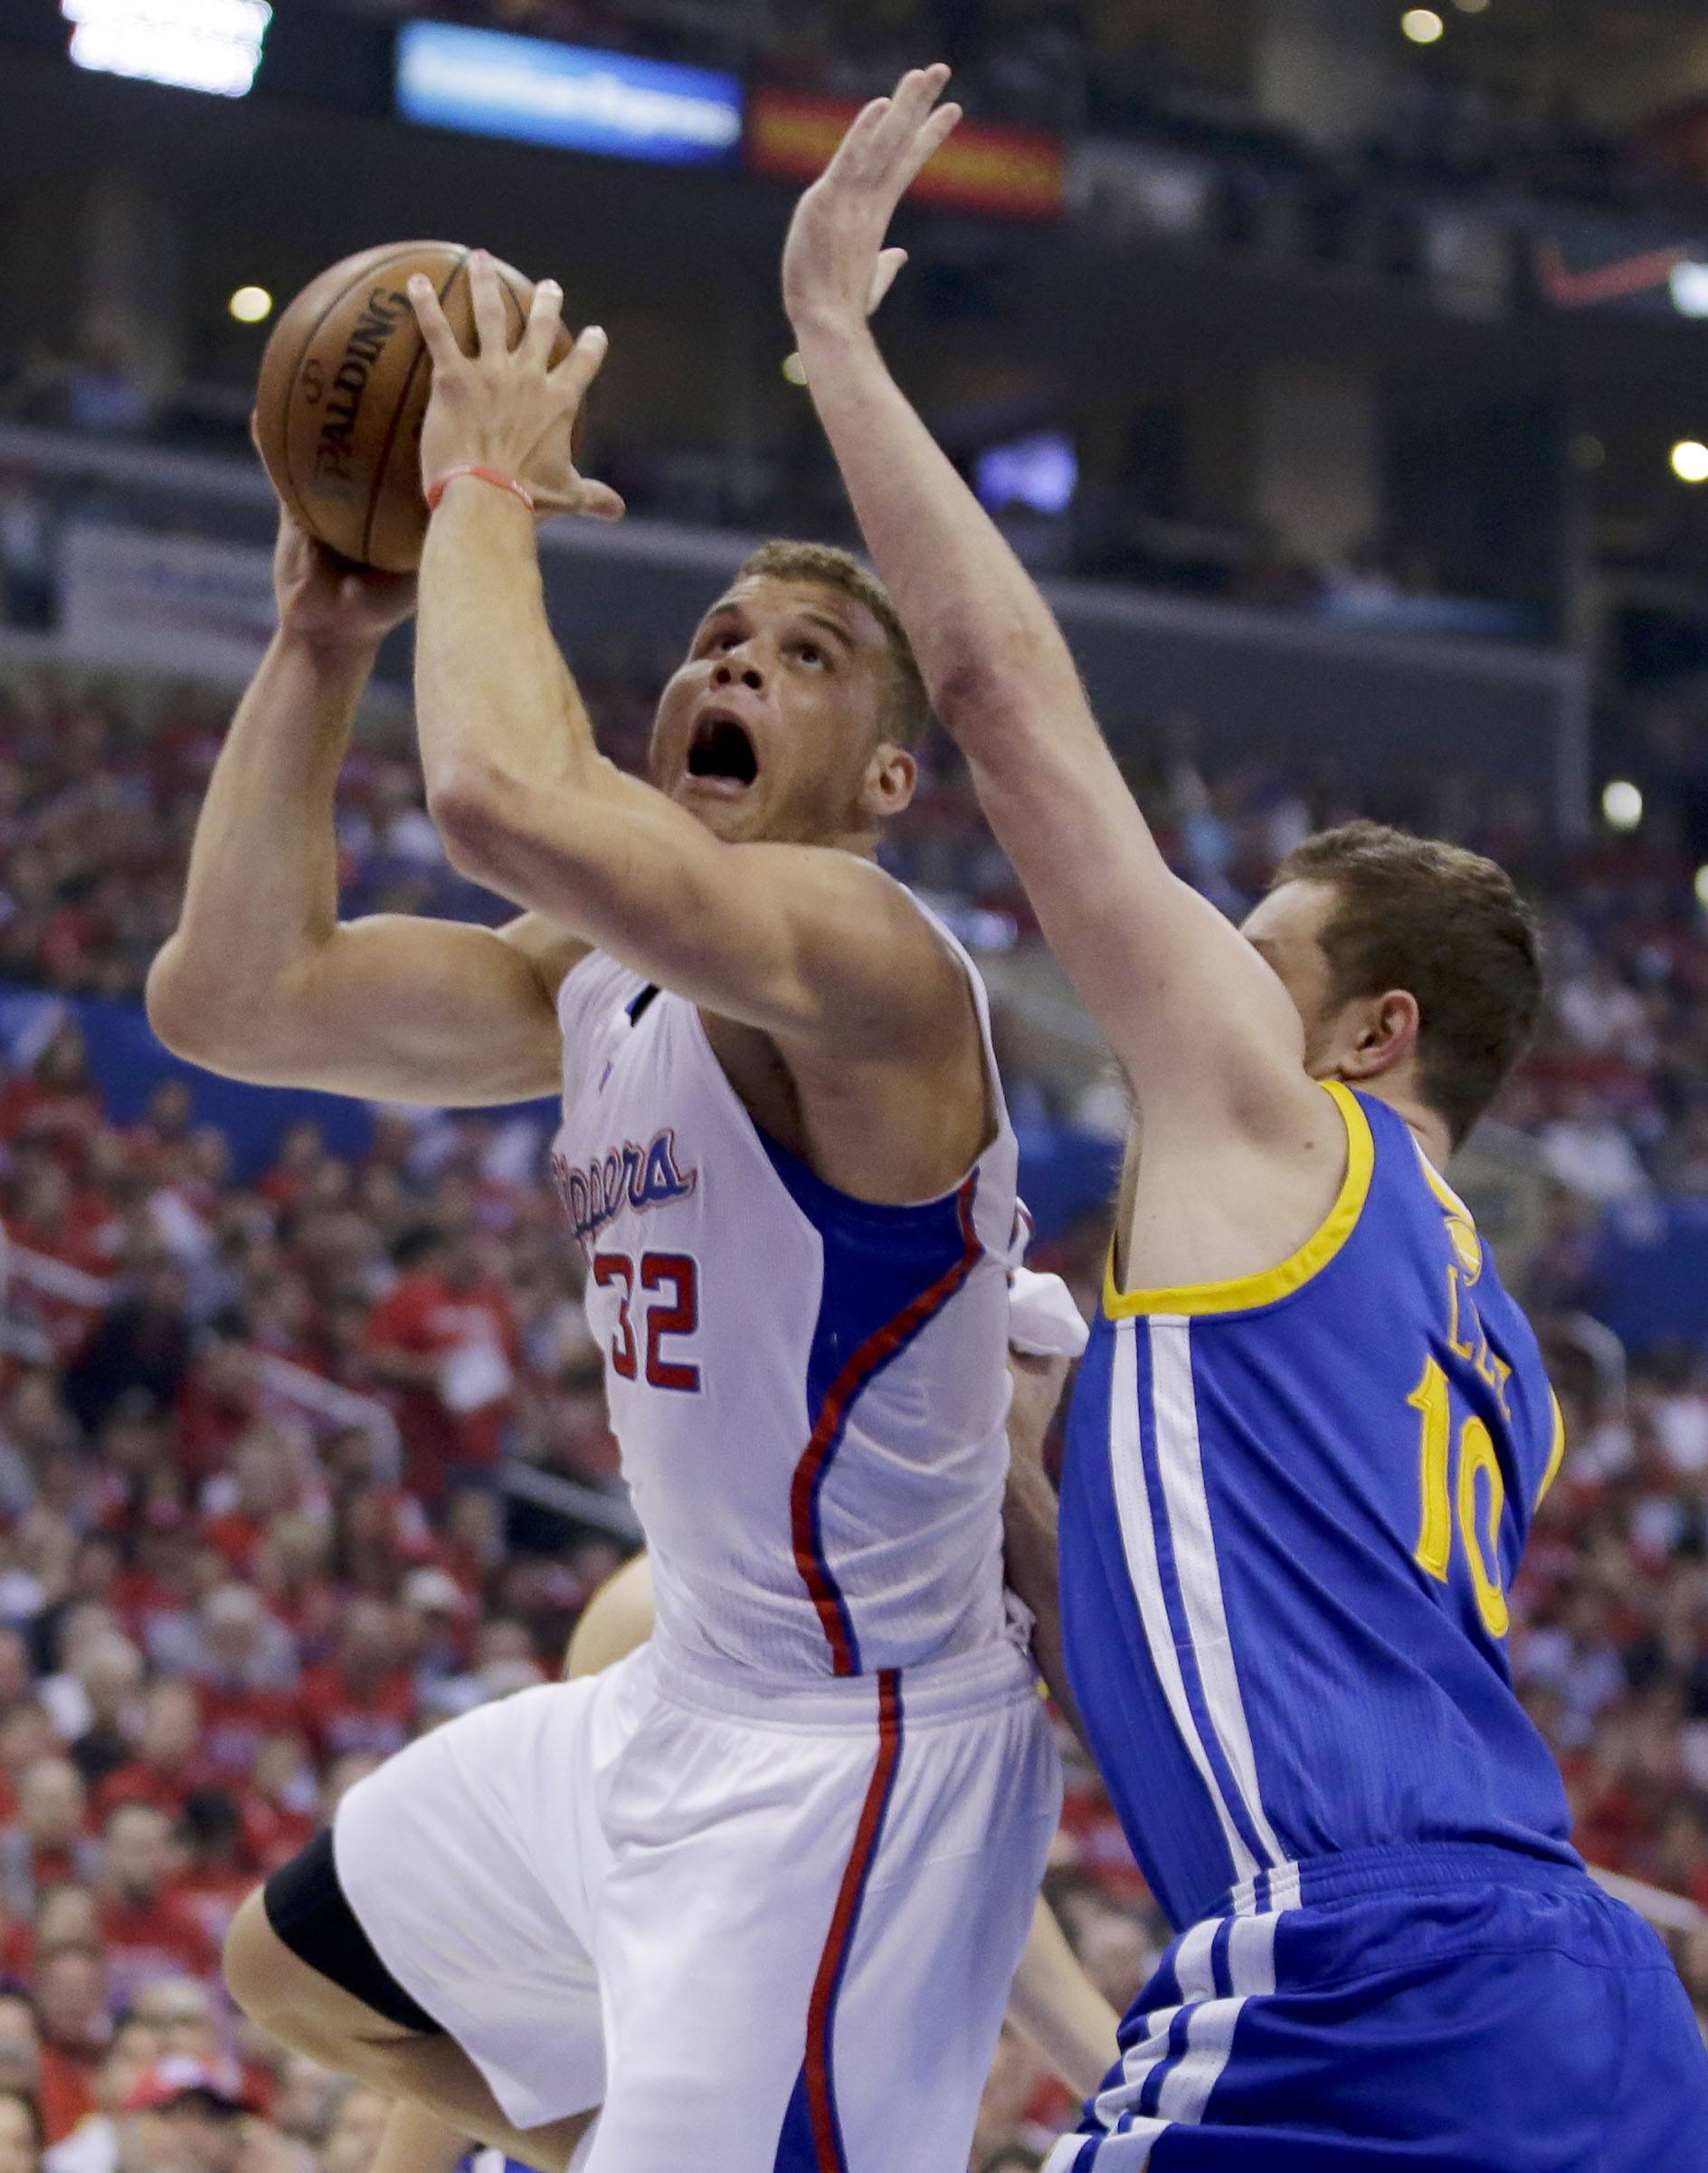 Los Angeles Clippers forward Blake Griffin, left, shoots around Golden State Warriors forward David Lee during the first half in Game 2 of an opening-round NBA basketball playoff series in Los Angeles, Monday, April 21, 2014.